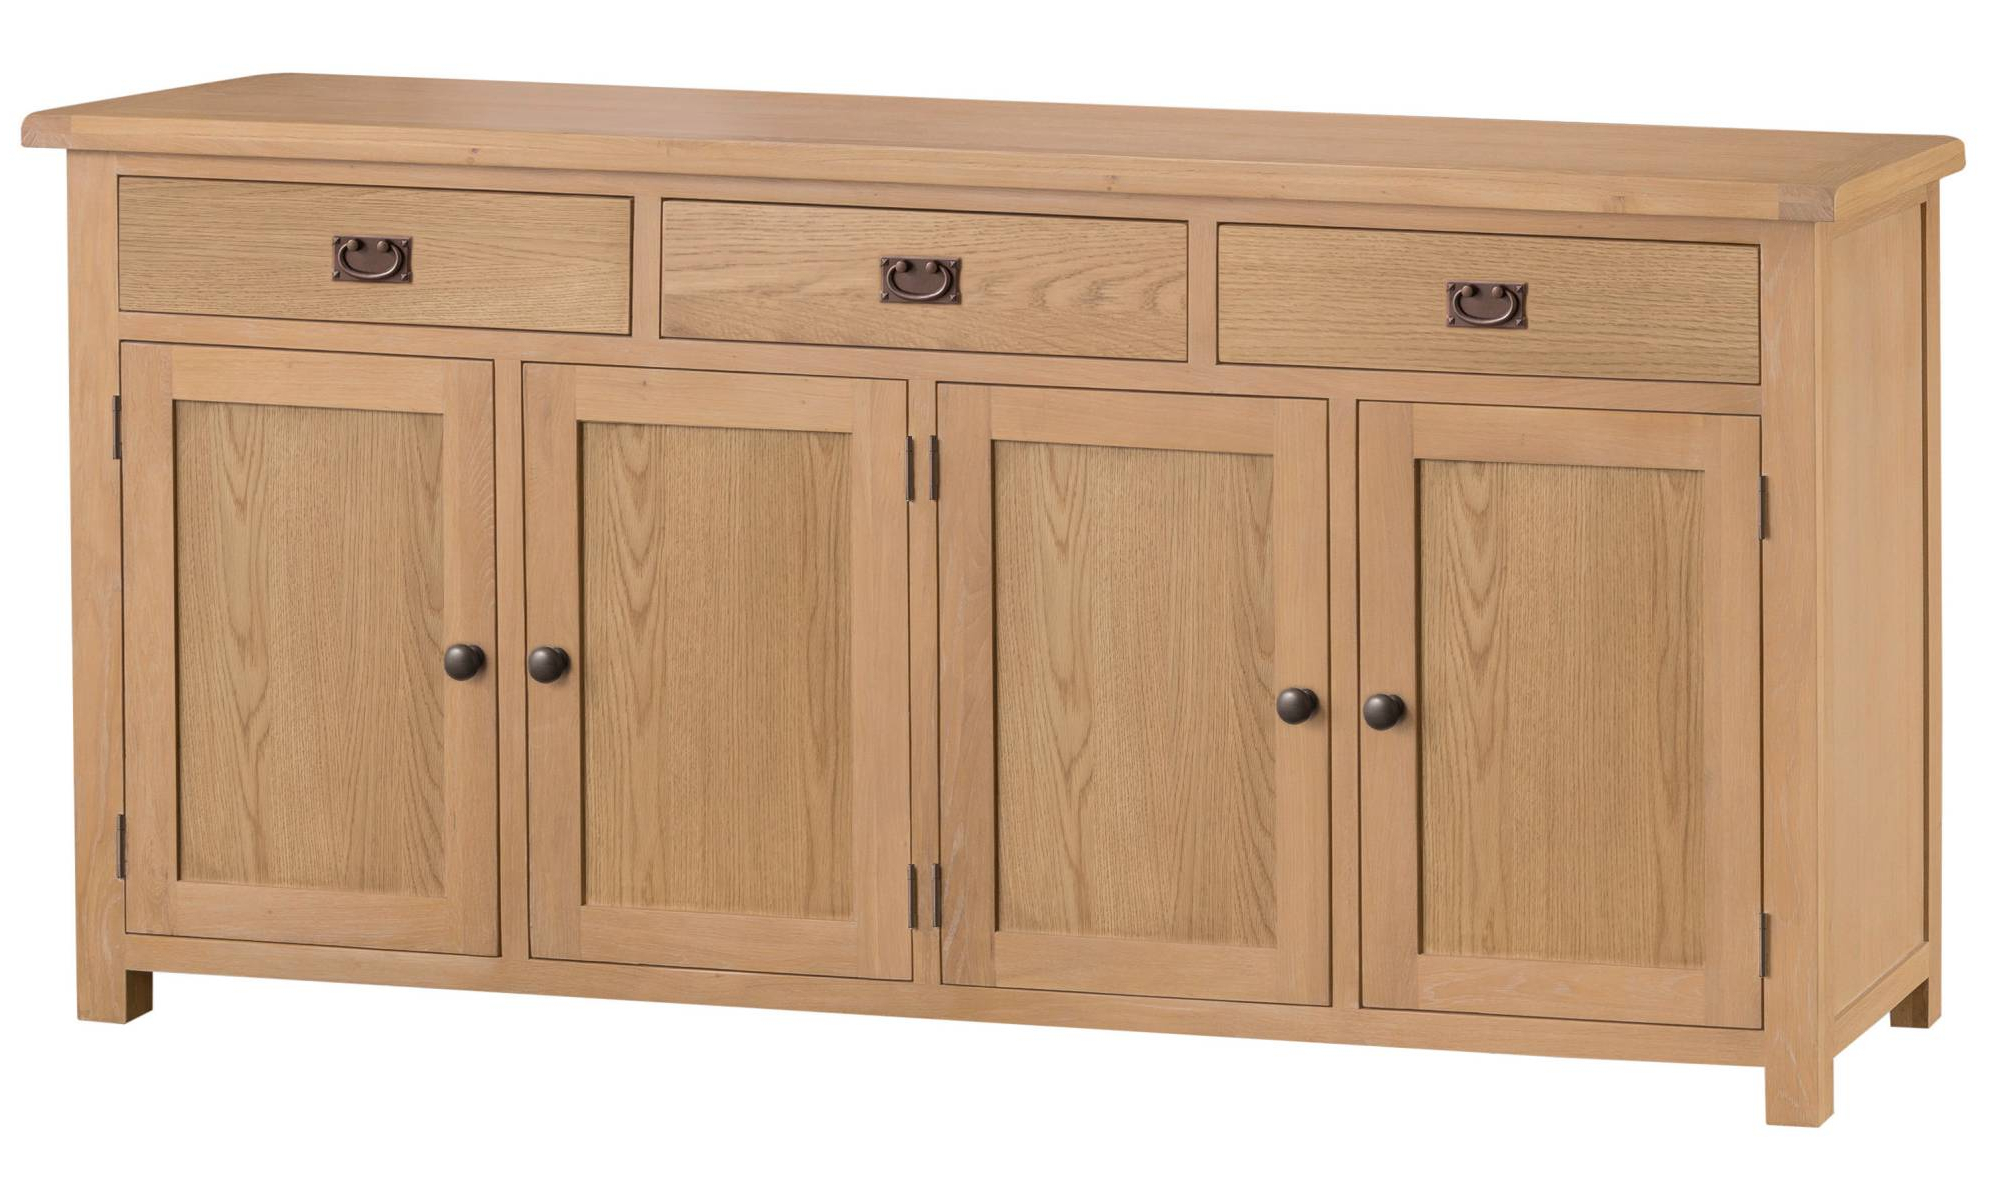 Vintage Finish 4 Door Sideboards Intended For Widely Used Edinburgh 4 Door Sideboard – Lpc Furniture (View 13 of 20)